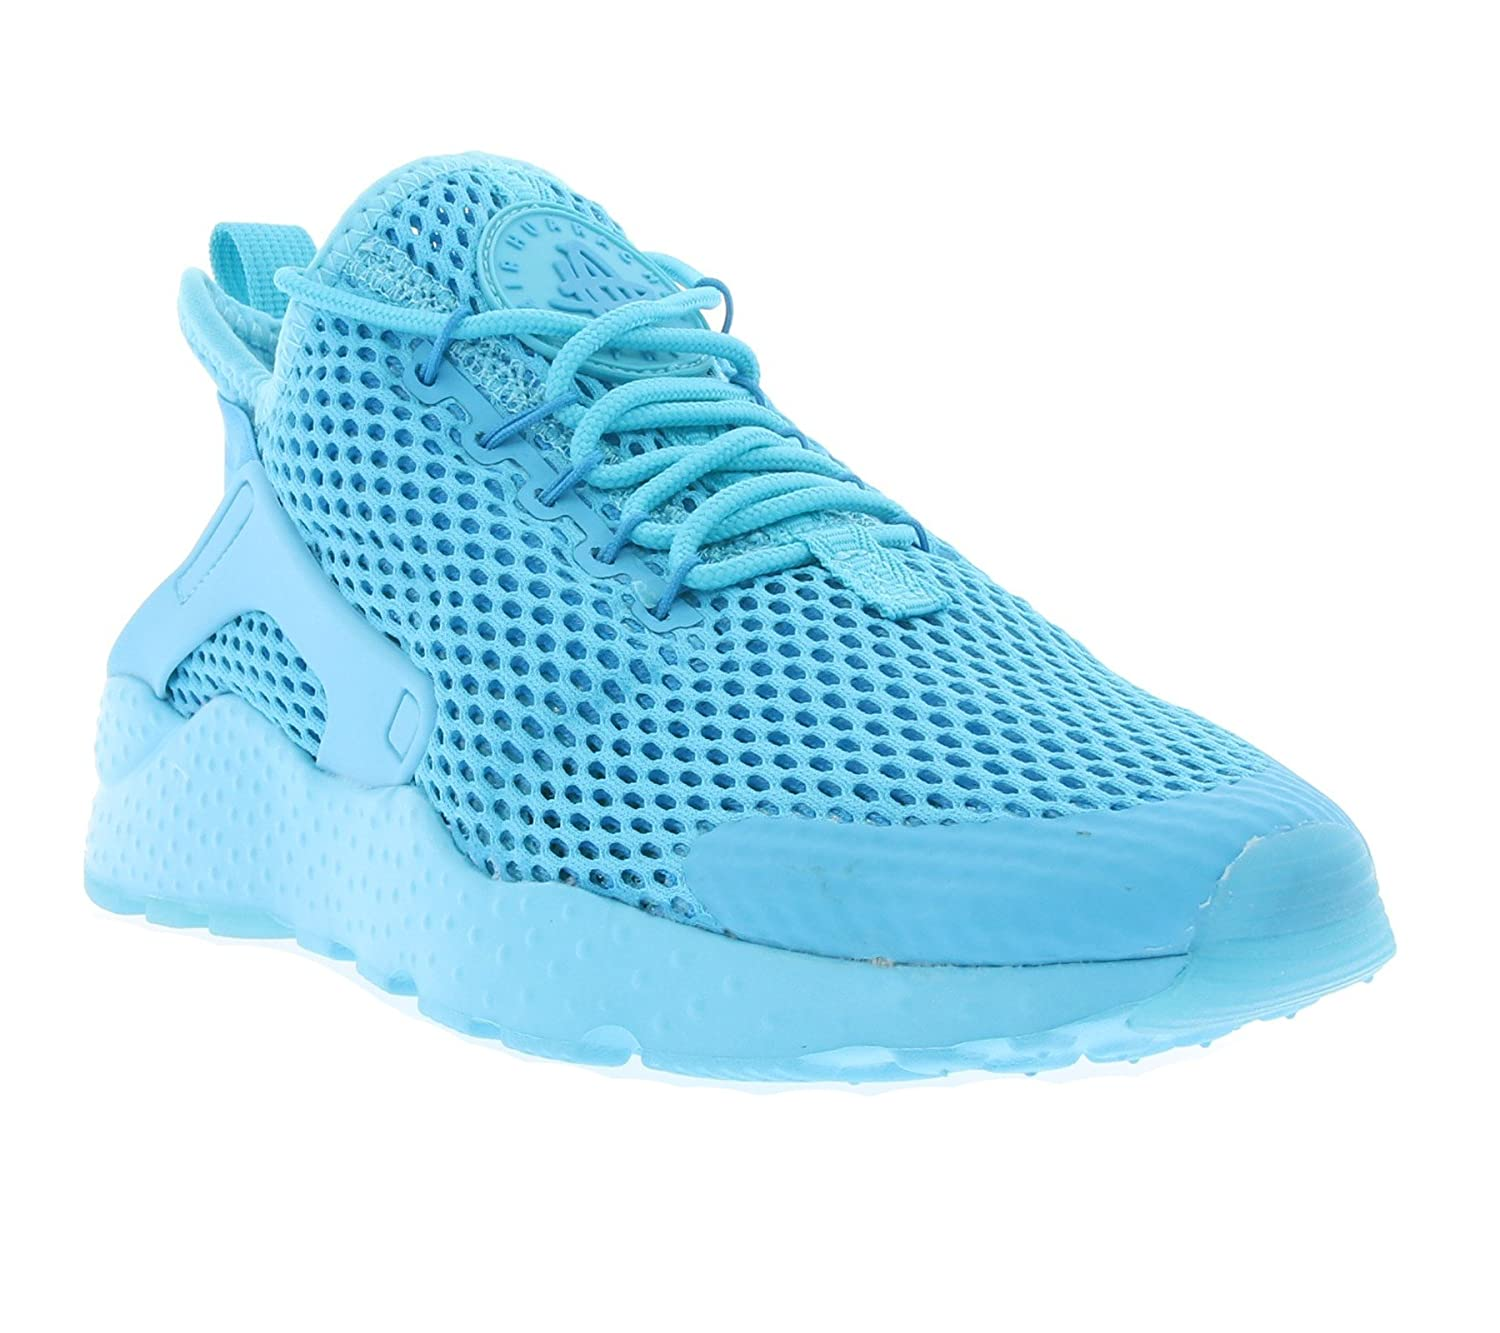 online store 7451a d6d44 Amazon.com   Nike Womens Air Huarache Run Ultra Br Low Top Lace Up Running  Sneaker   Road Running